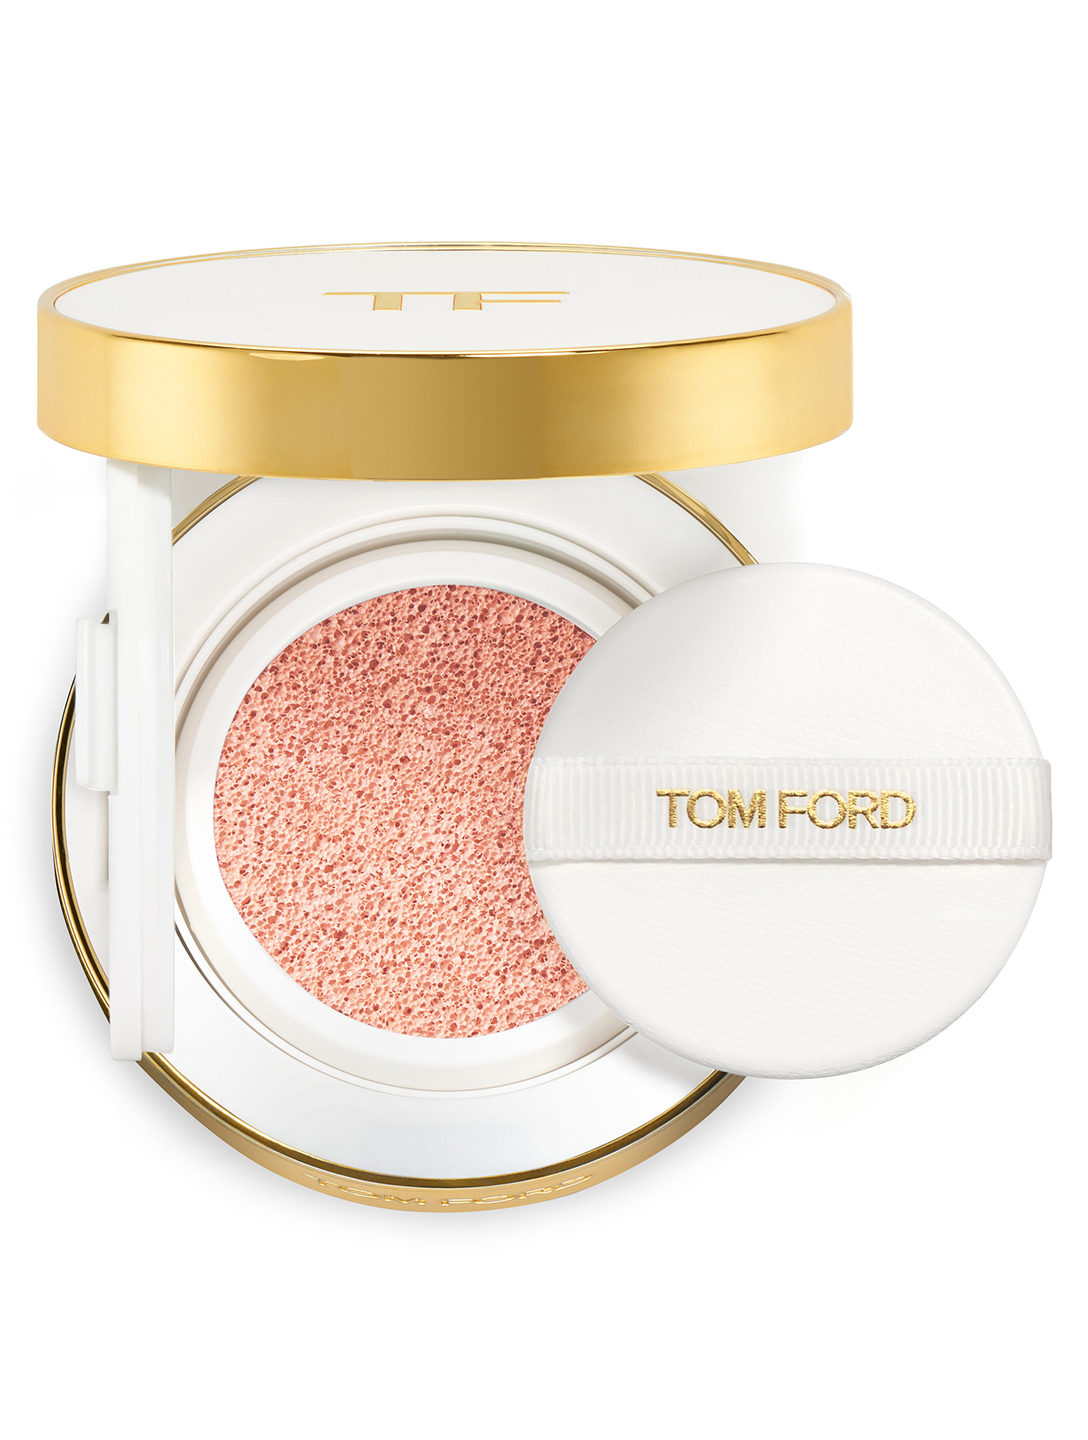 TOM FORD Soleil Glow Tone Up Foundation Hydrating Cushion Compact SPF 45 Beauty Neutral